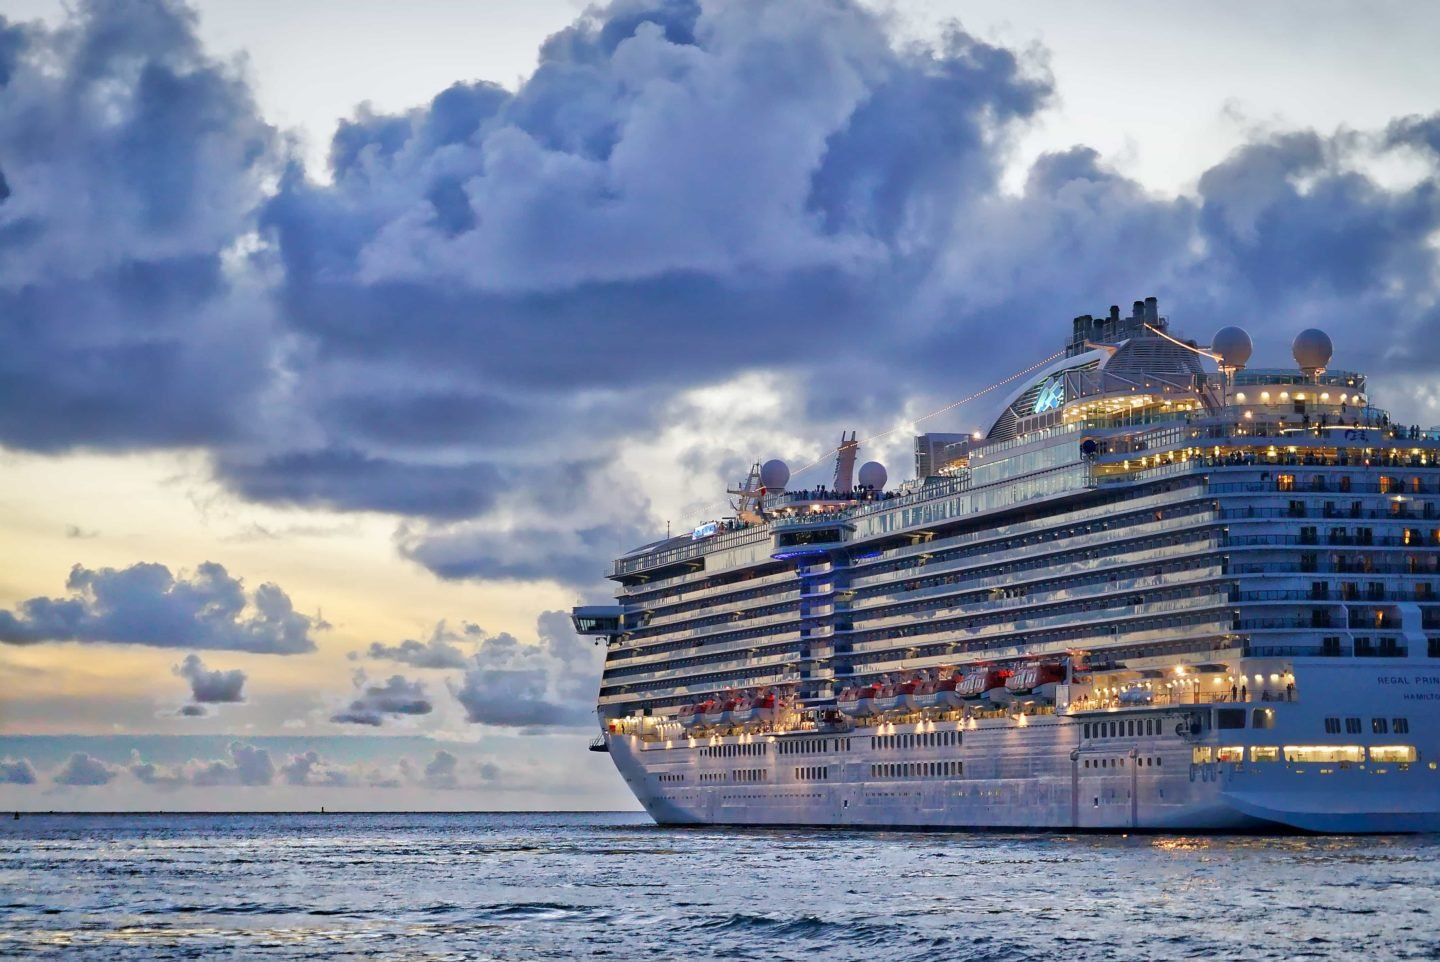 Cruise ship on sea Cruise Safety priorities and tips